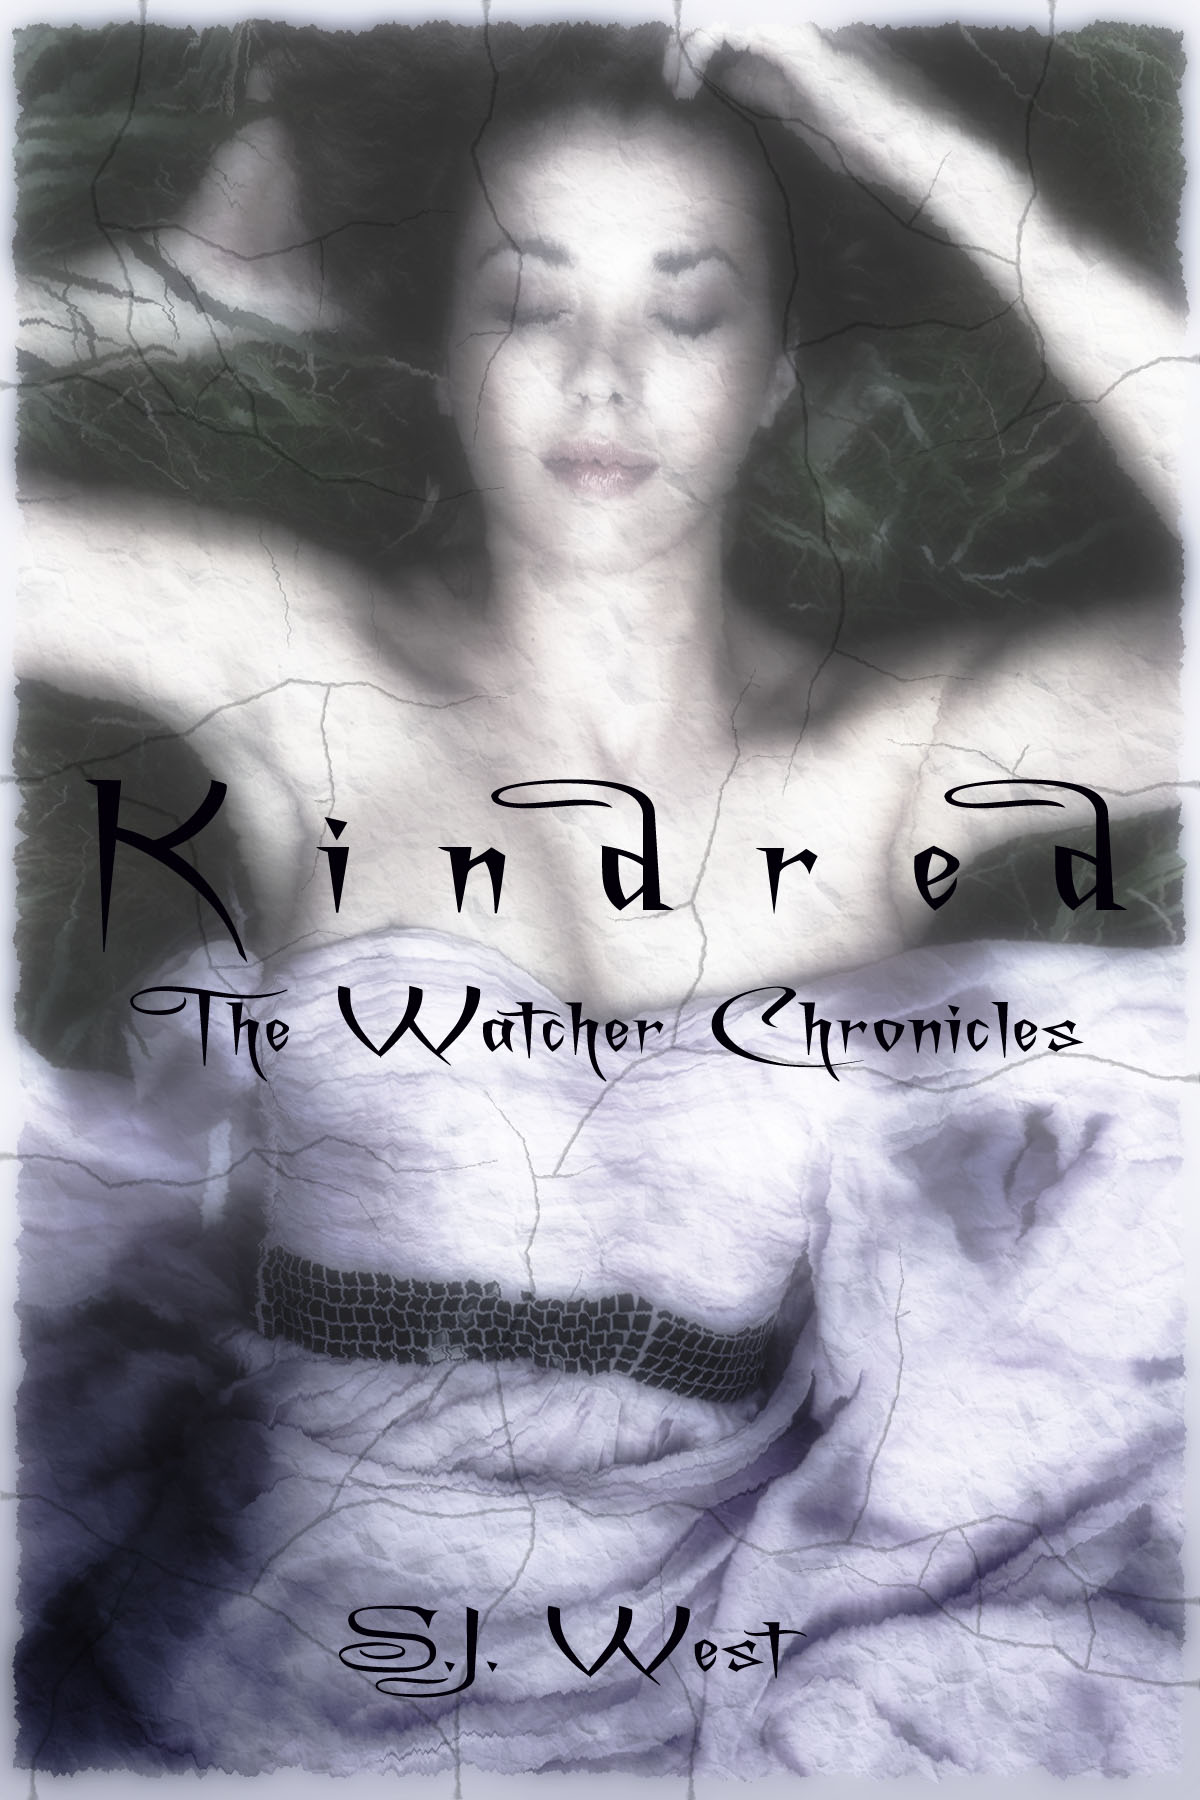 Kindred (Book 2, The Watcher Chronicles) By: S.J. West